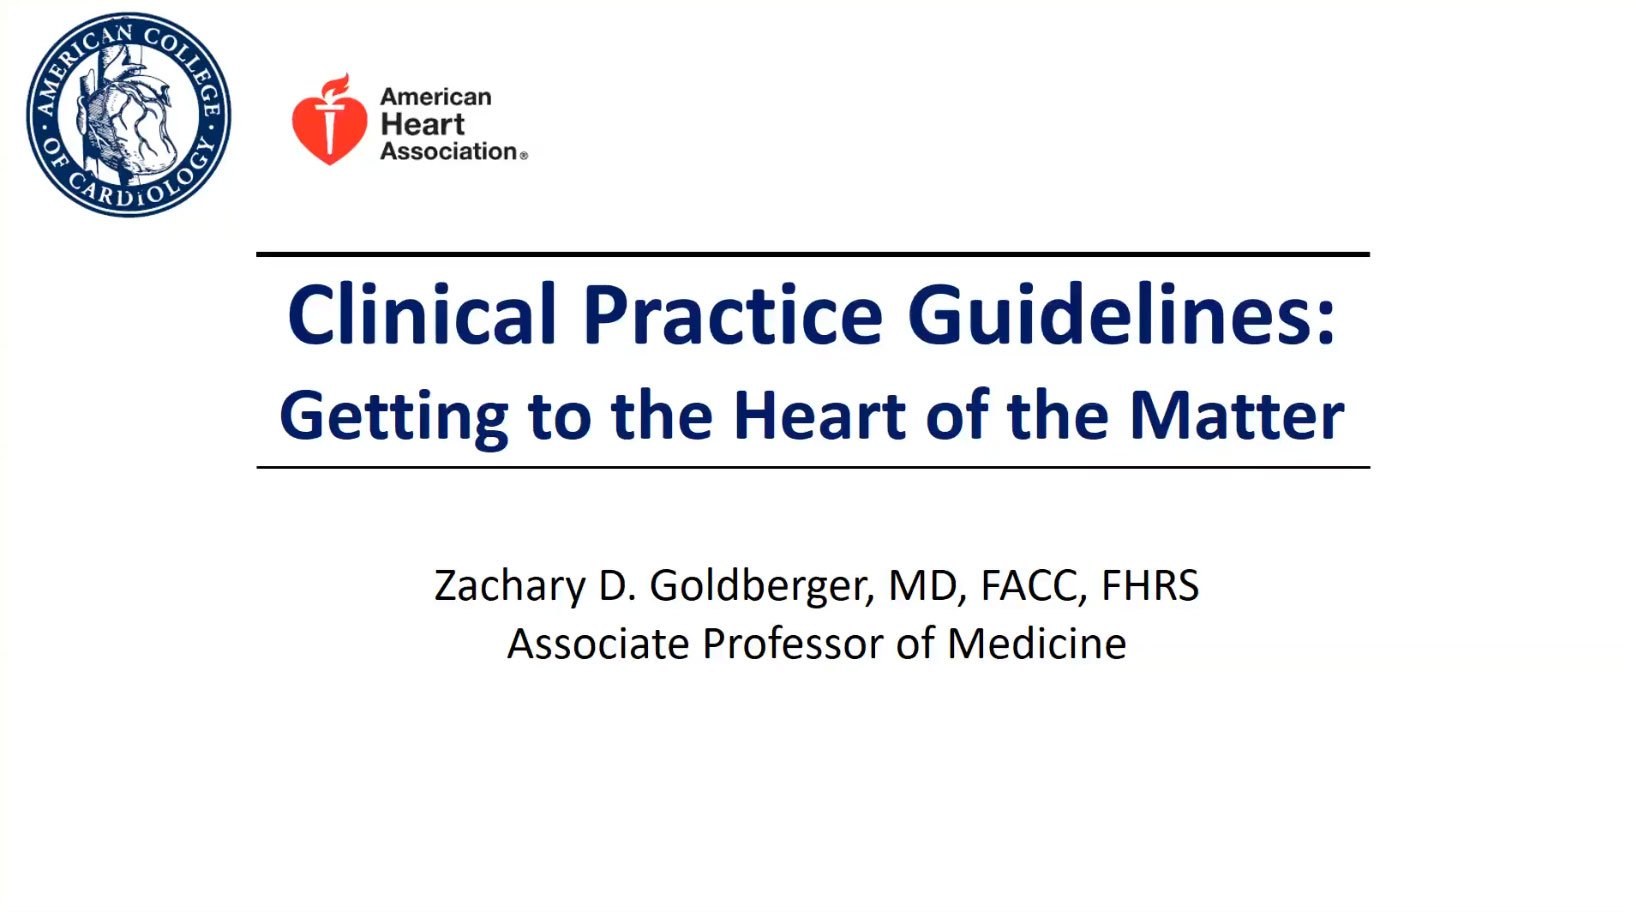 Picture from Clinical Practice Guidelines video